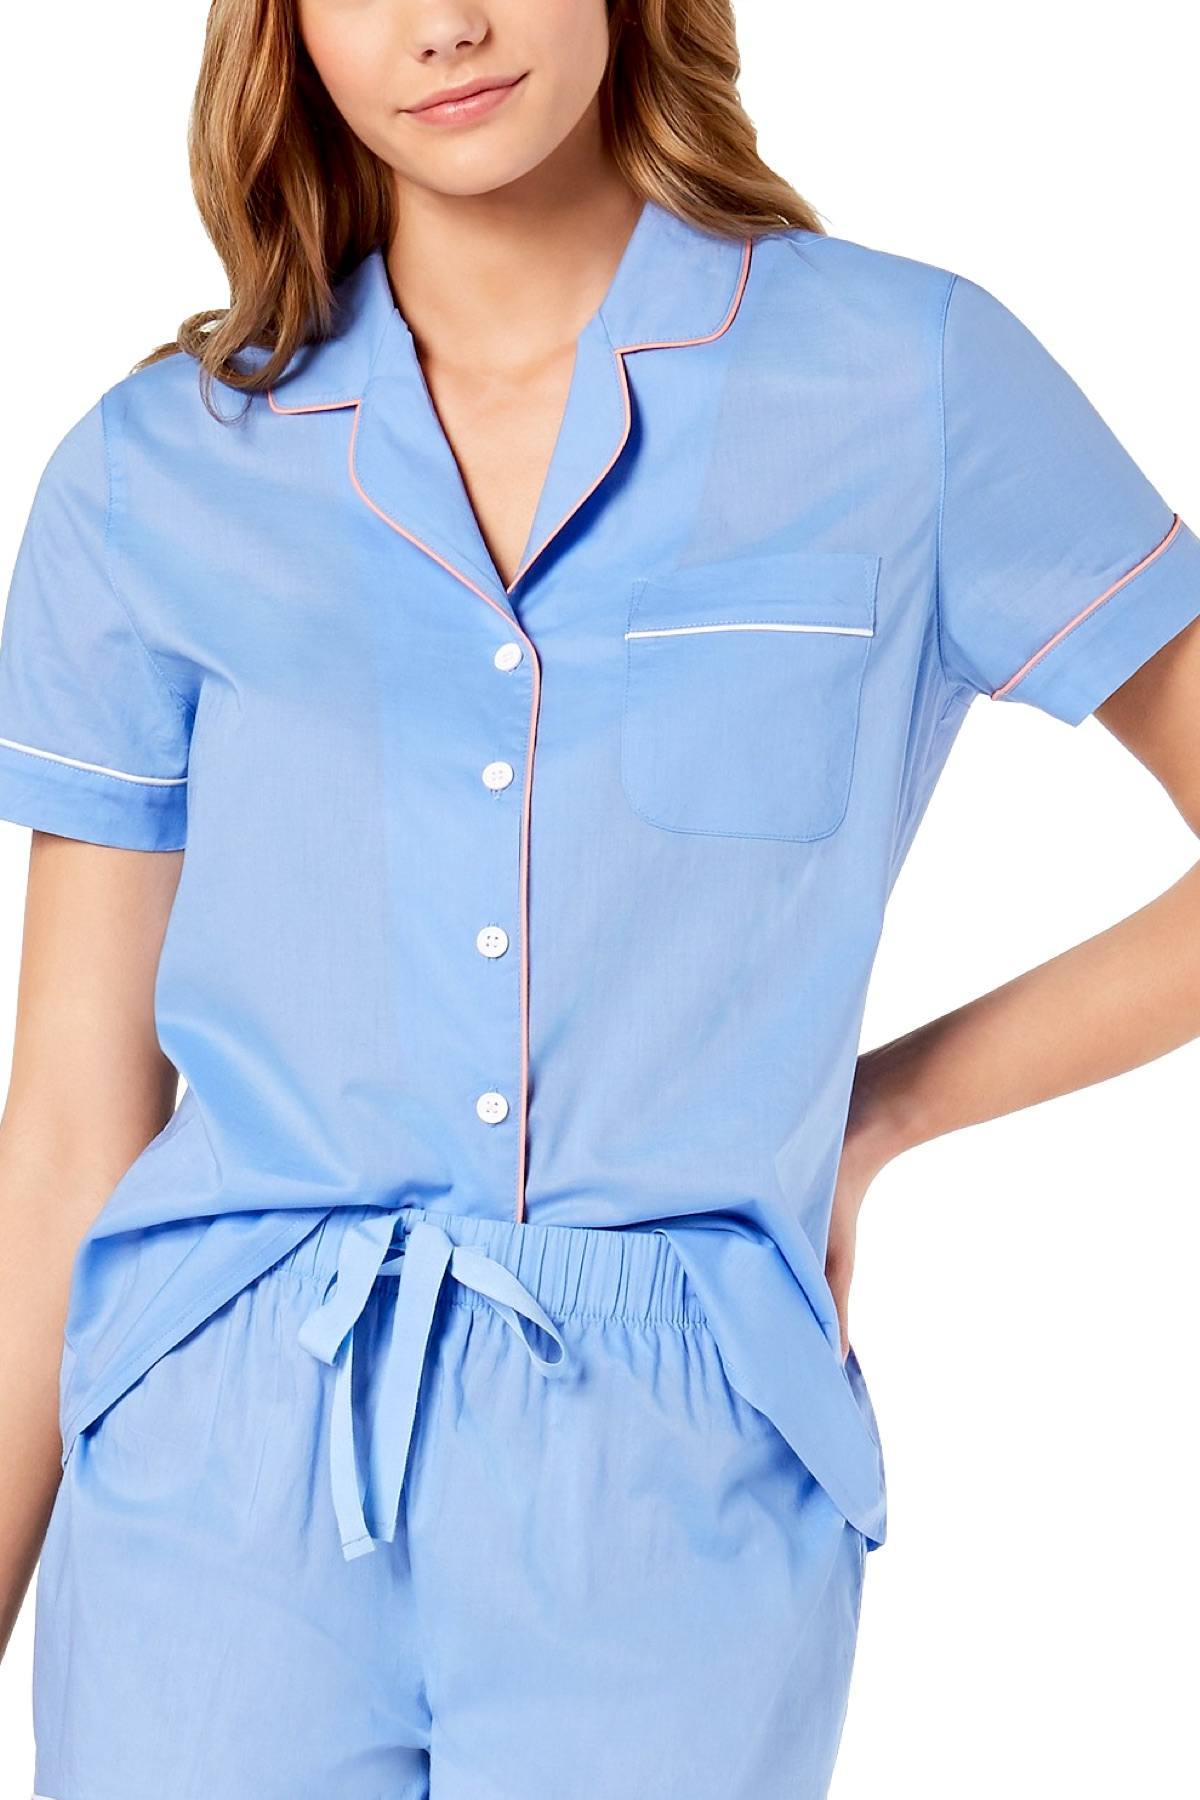 Charter Club Intimates Yacht Blue Notch Collar Woven Cotton PJ Top